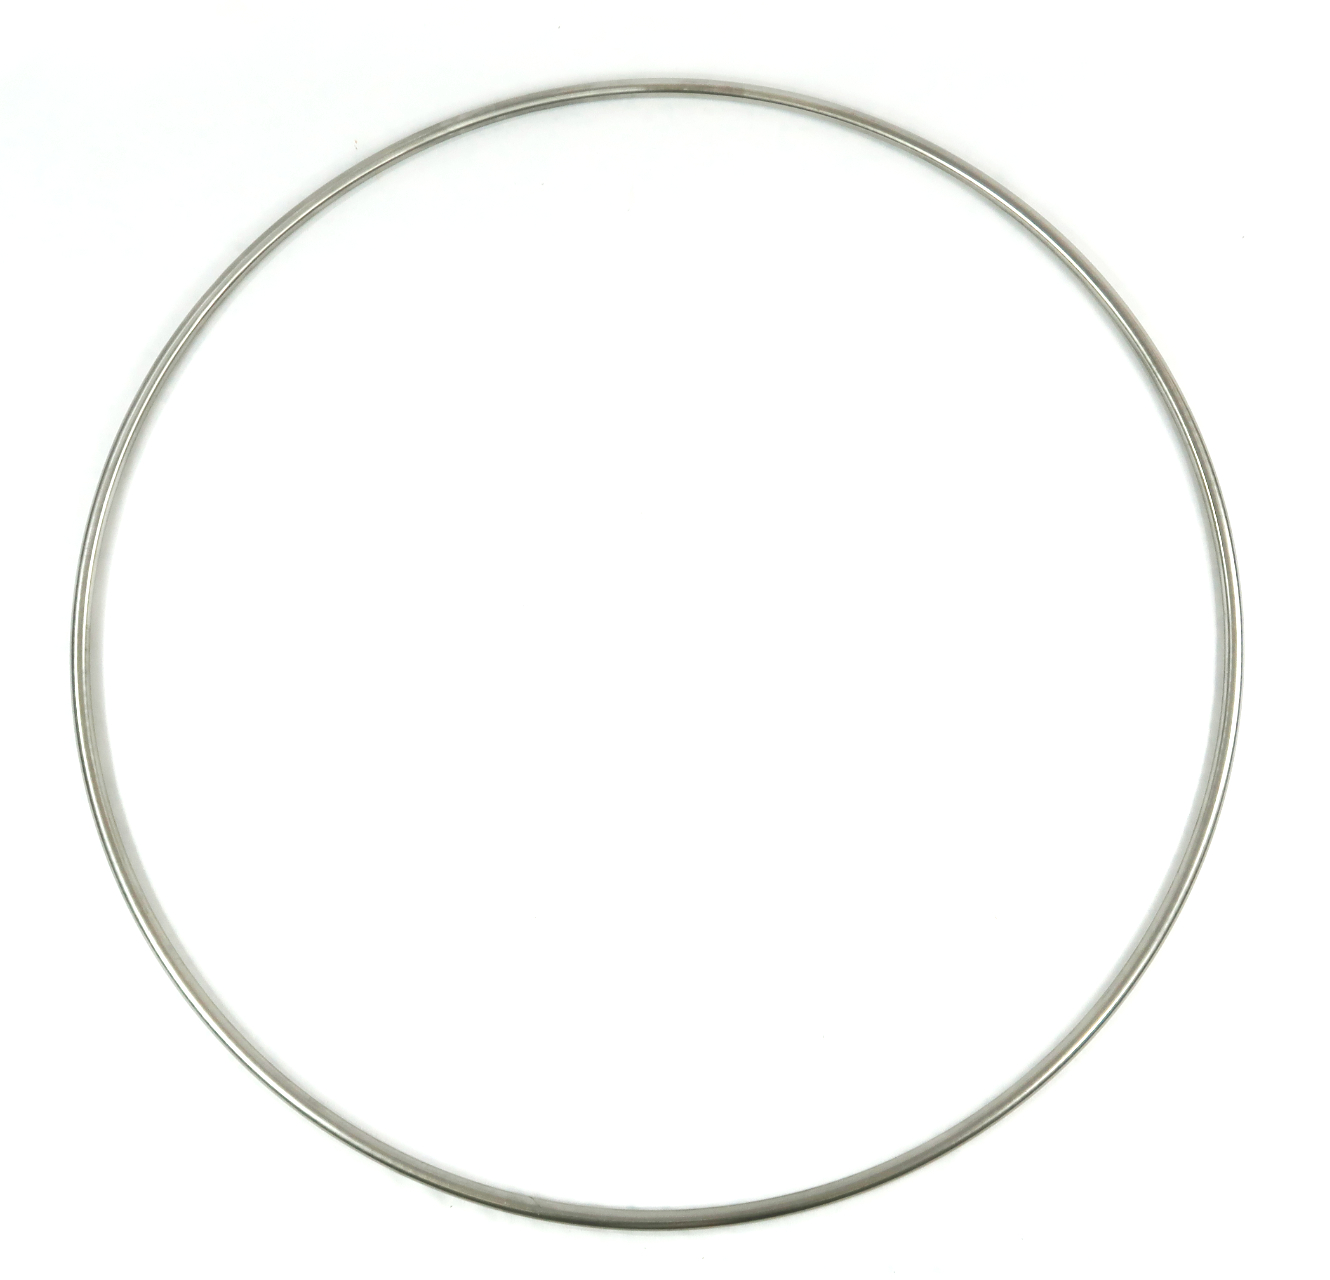 Mouth Ring, 75cm Dia., Stainless